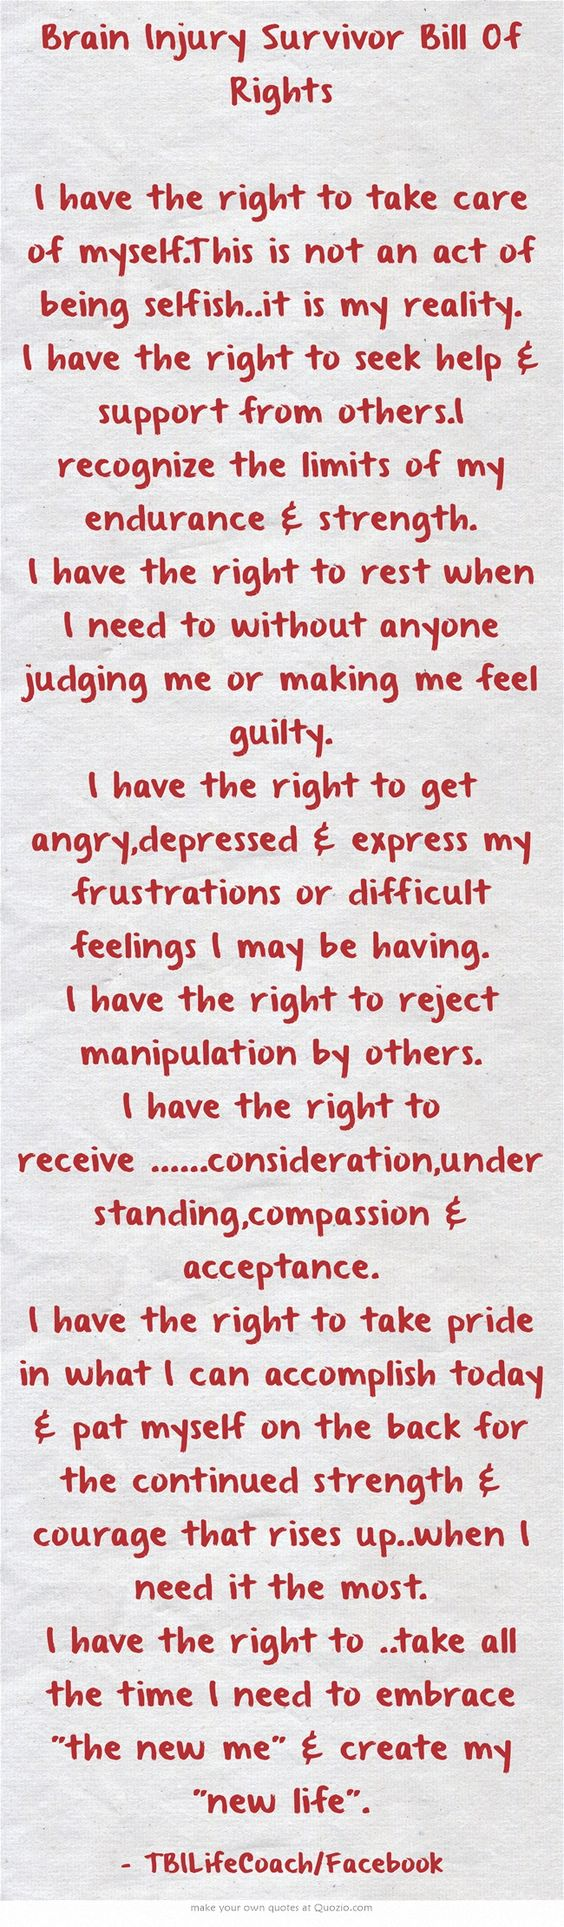 Brain Injury Survivor Bill Of Rights I have the right to take care of myself.This is not an act of being selfish..it is my reality. I have the right to seek help support from others.I recognize the limits of my endurance strength. I have the right to rest when I need to without anyone judging me or making me feel guilty. I have the right to get angry,depressed express my frustrations or difficult feelings I may be having. I have the right to reject manipulation by...